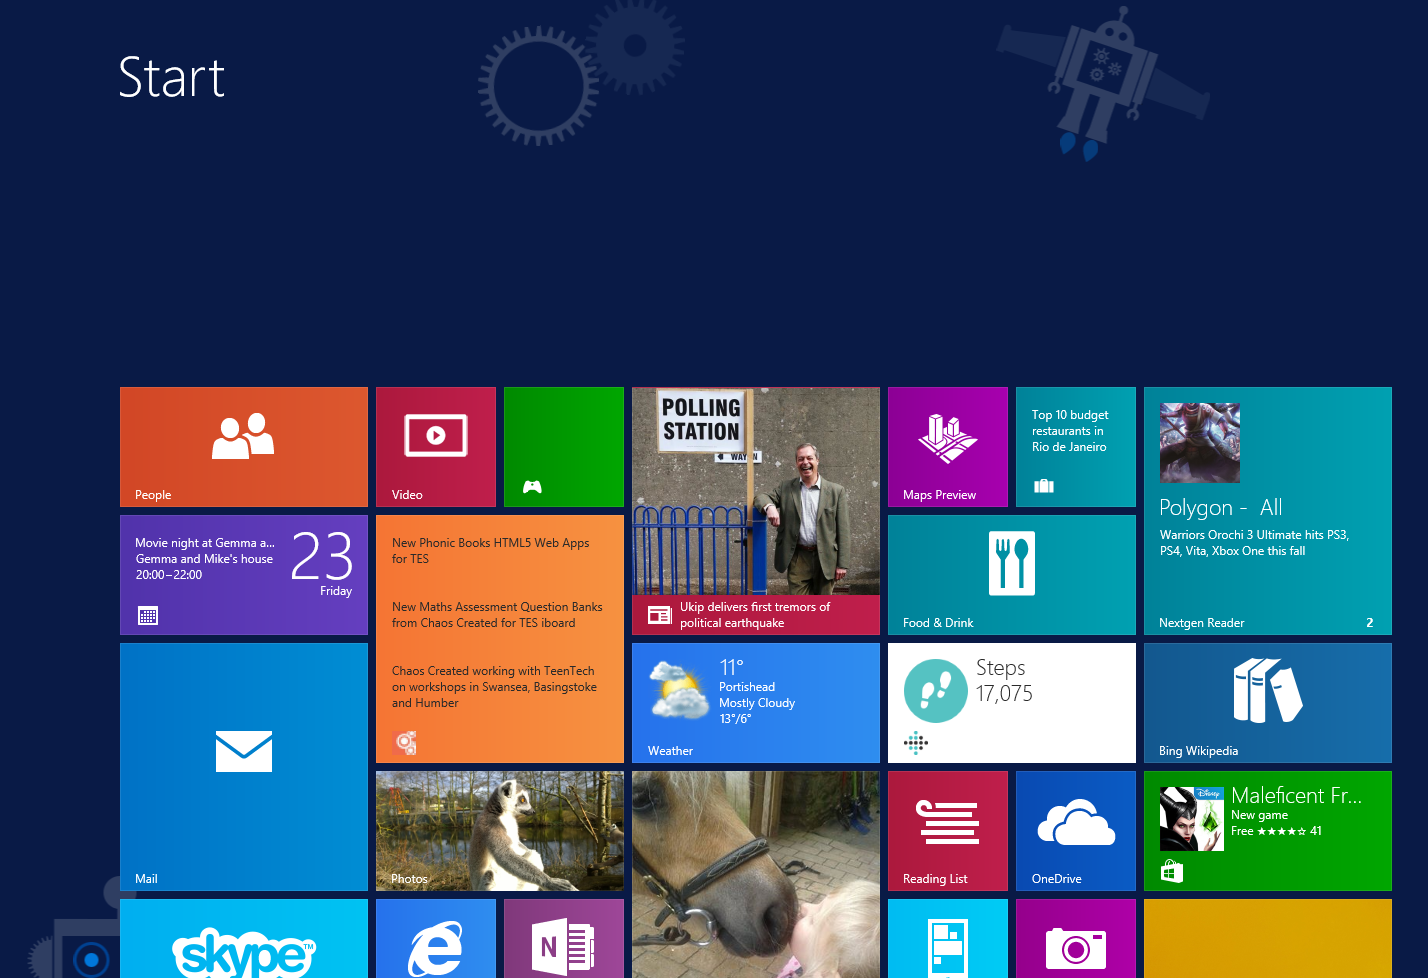 Using Windows 8/Surface? Pin us for our latest news!